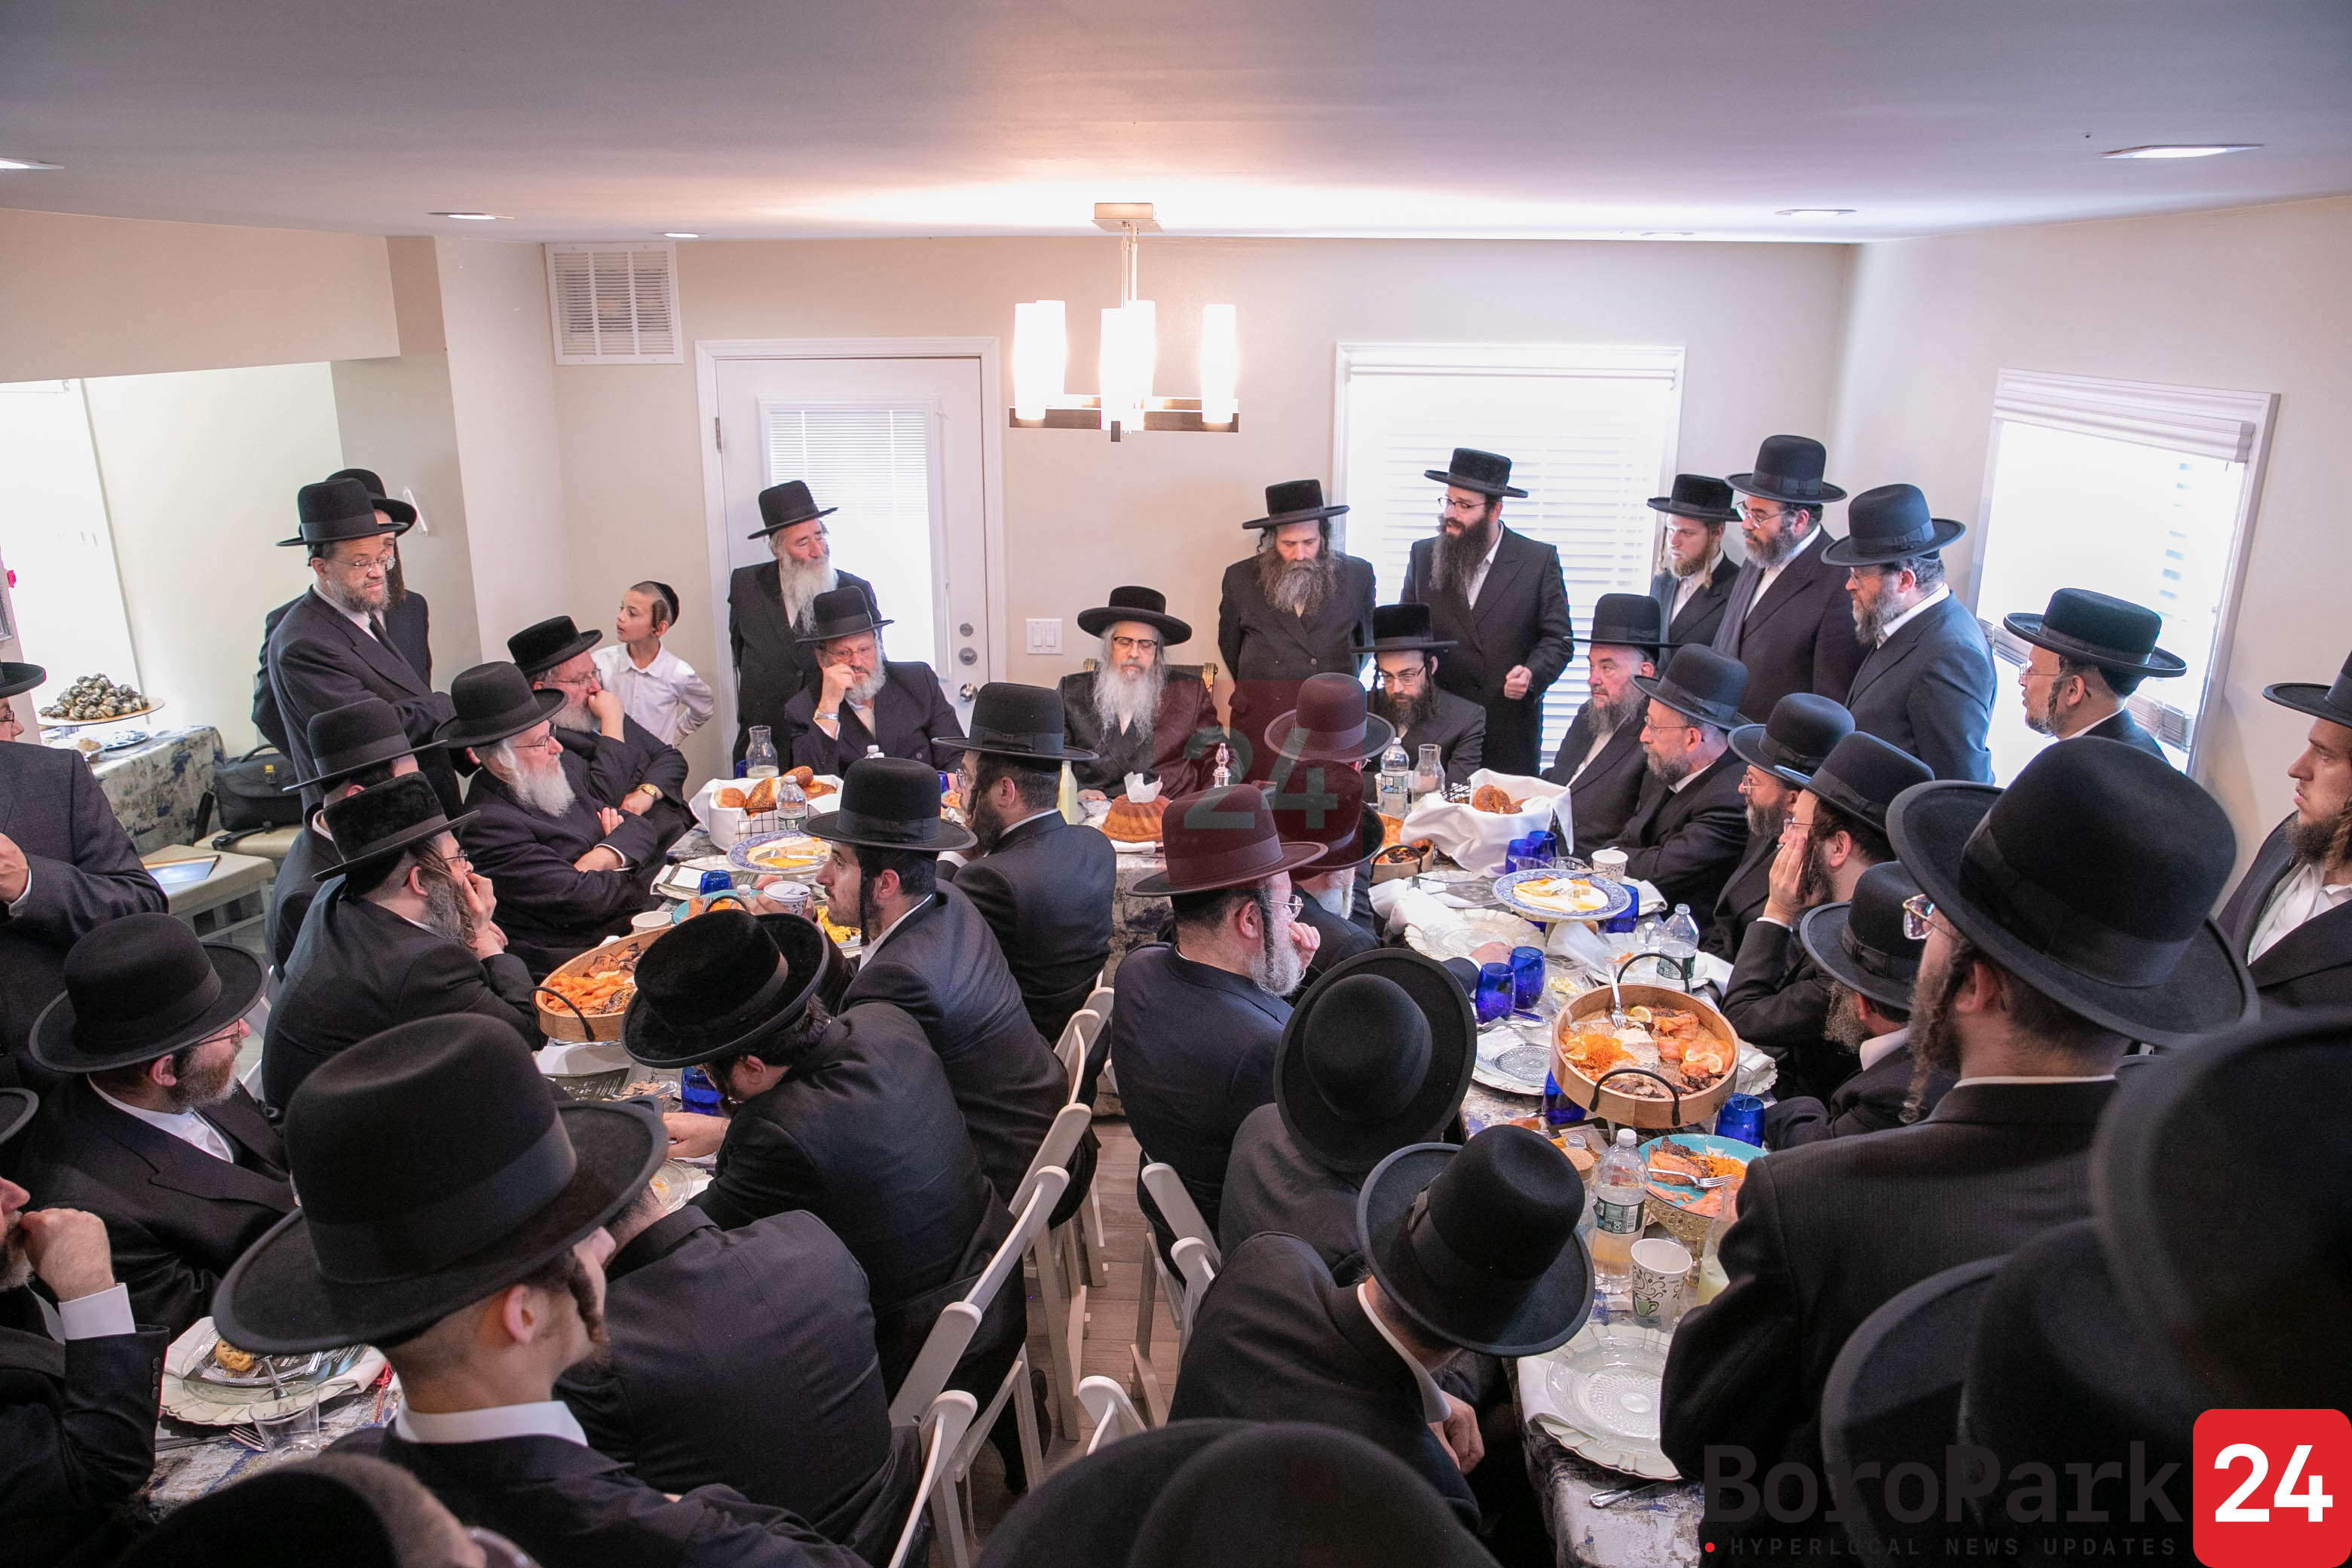 Mesibah in Loch Sheldrake for Mosdos Satmar in Lakewood